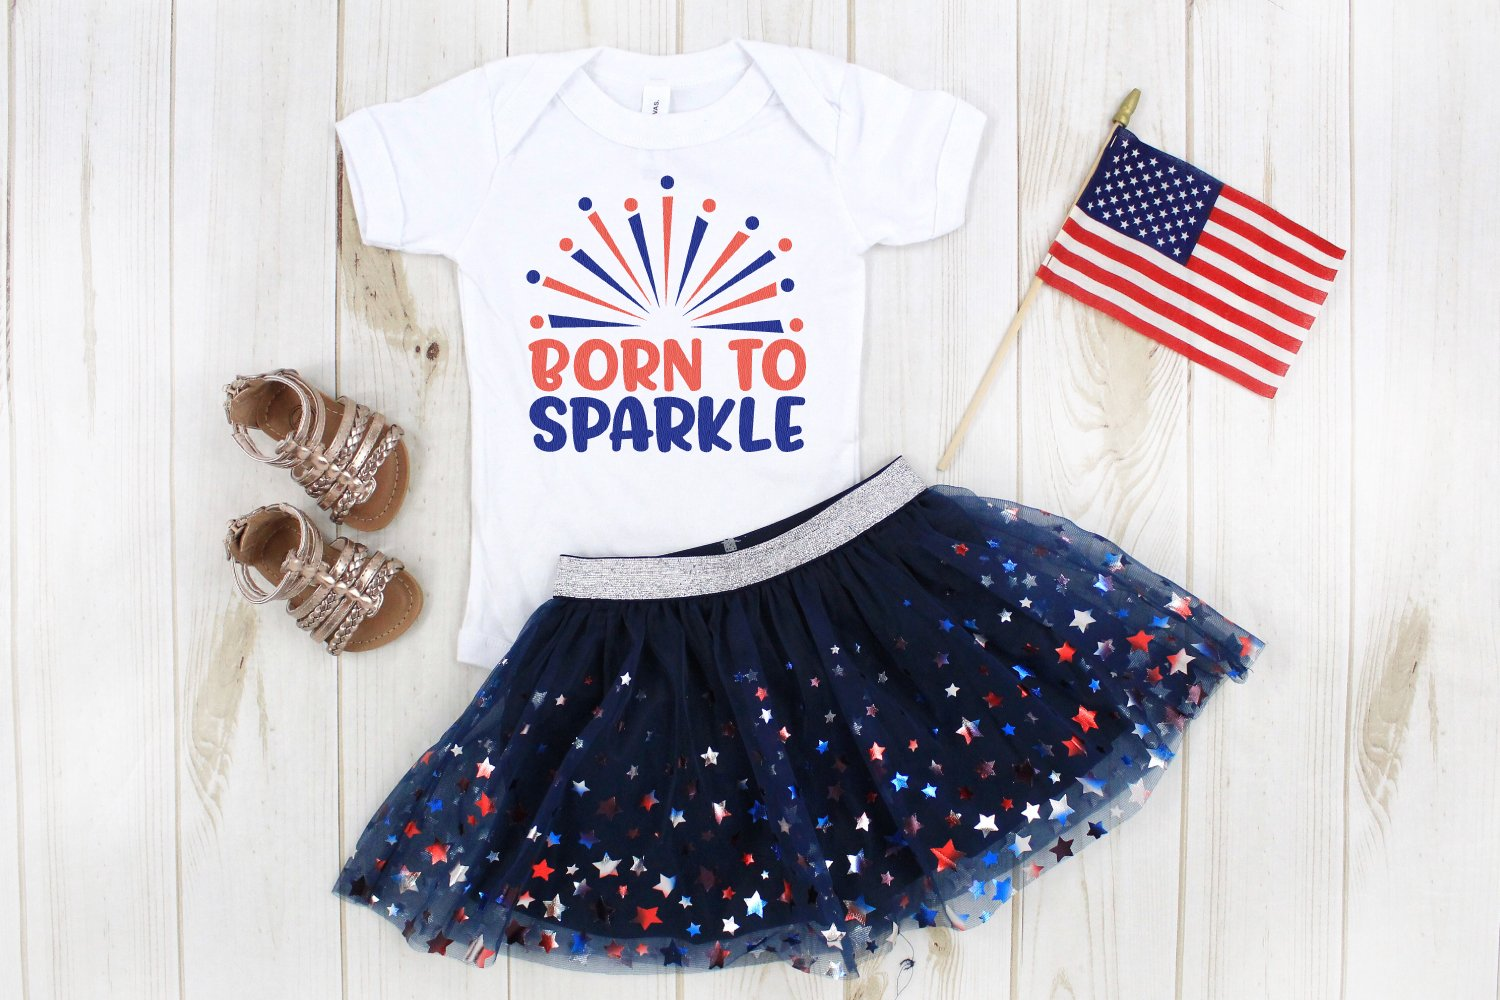 Born to Sparkle 4th of July SVG mockup